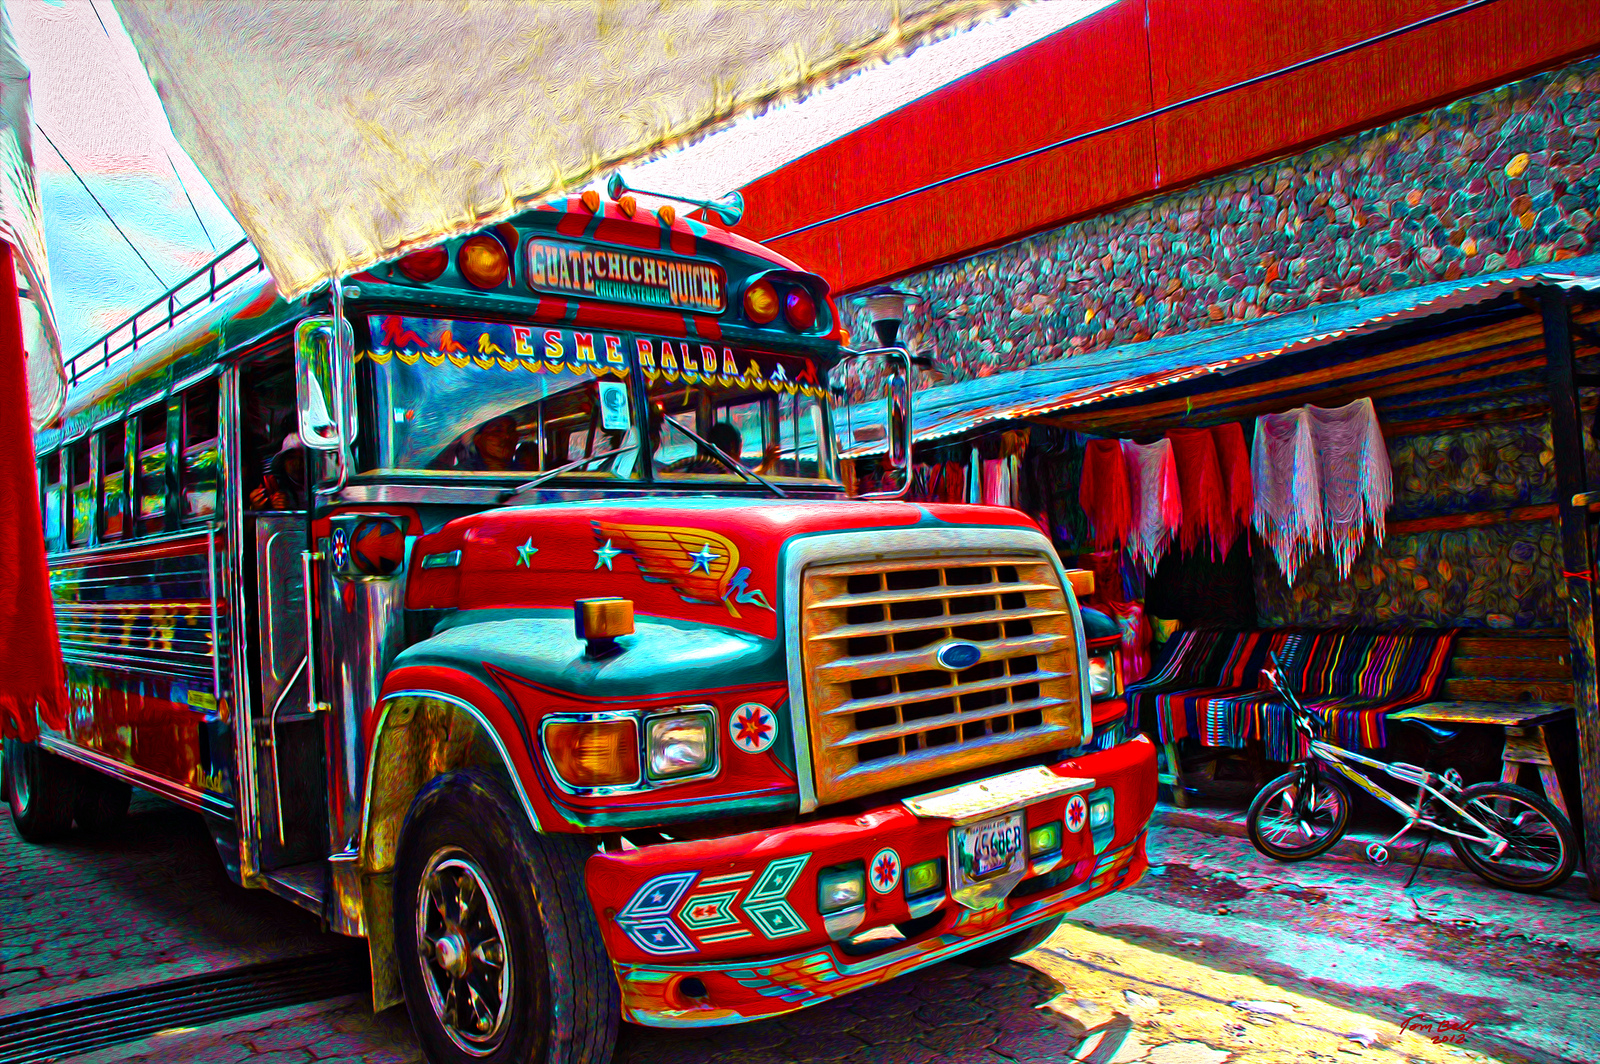 Moving Murals: Bedazzle a Tech Bus and Win $500